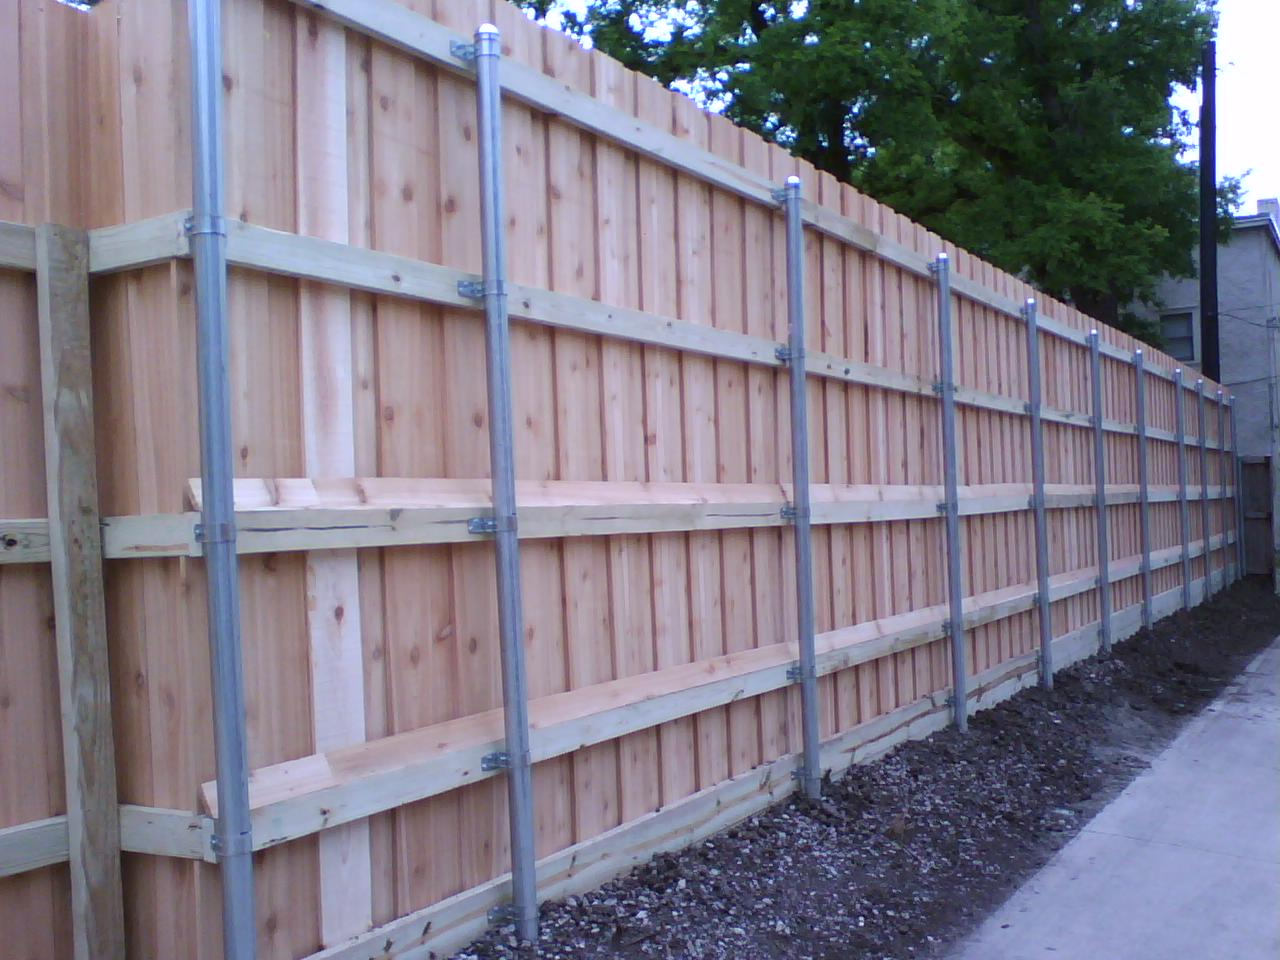 38 8 Foot Board on Board Fence with Metal Posts Fences Decks by